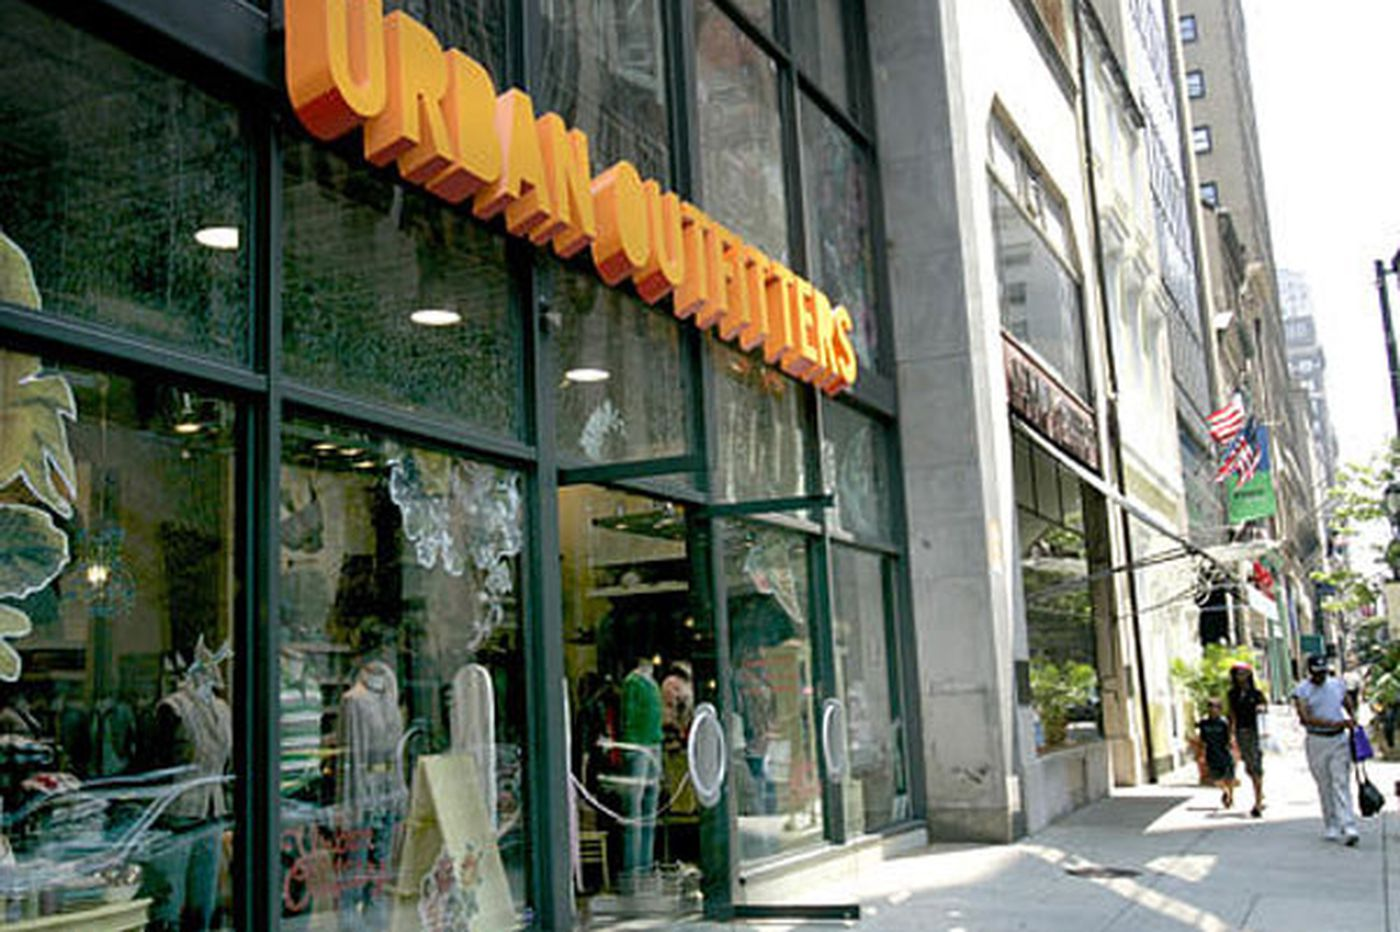 Labor violations found at Urban Outfitters' suppliers